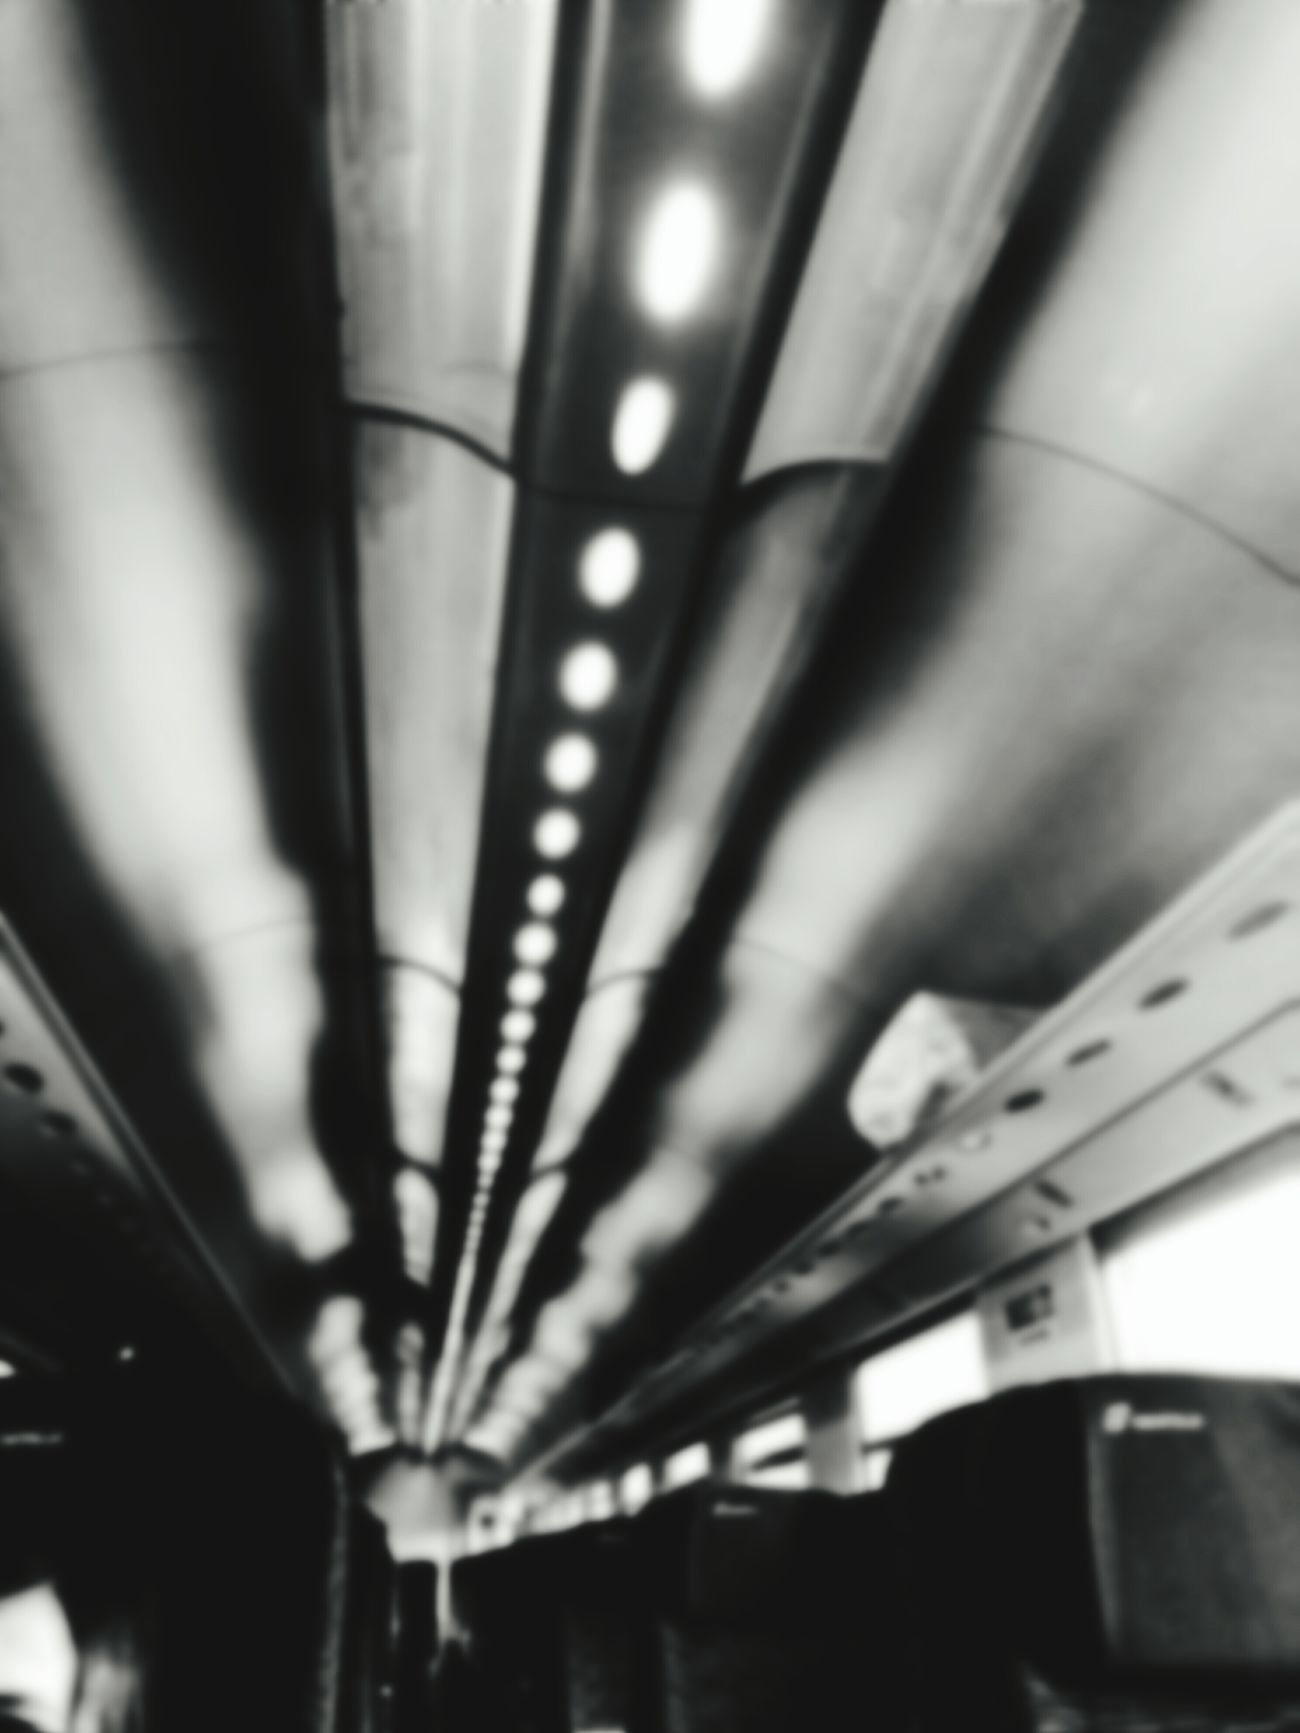 On The Train... On The Train Pipe - Tube Fuel And Power Generation Industry Pipeline Aluminum Electricity  Backgrounds Illuminated Indoors  No People Technology Iron - Metal Travel Transportation The Train Goes Away. Film Industry Metal Industry Day